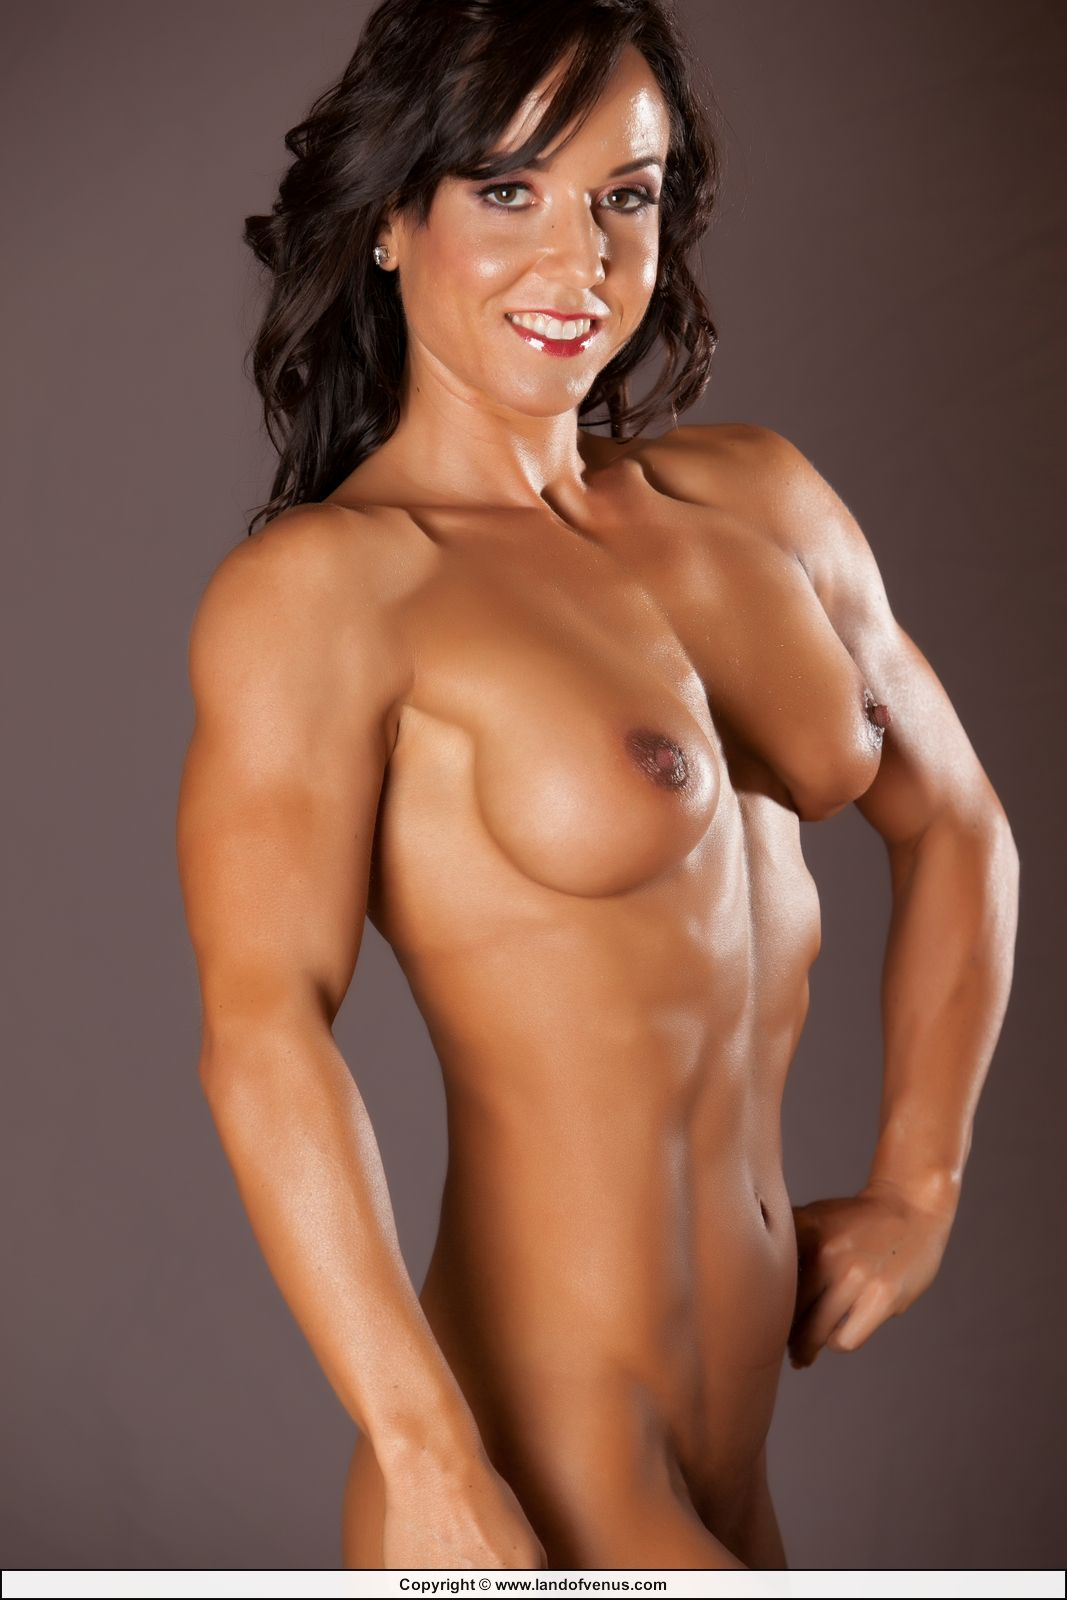 Naked Women Bodybuilders  Land Of Venus - Nude Female -3551